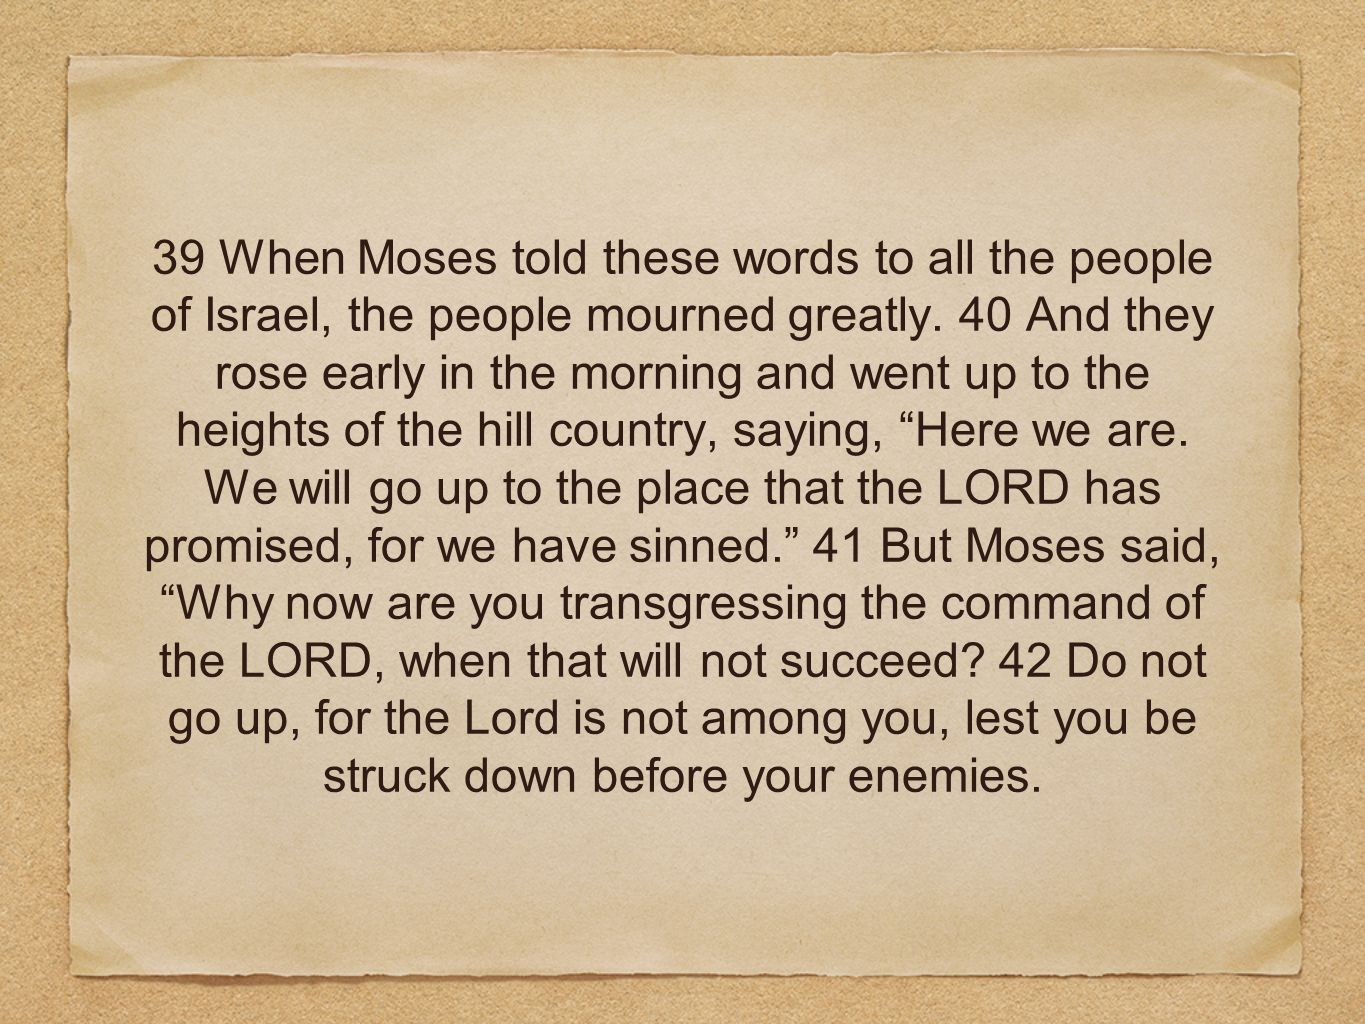 39 When Moses told these words to all the people of Israel, the people mourned greatly.